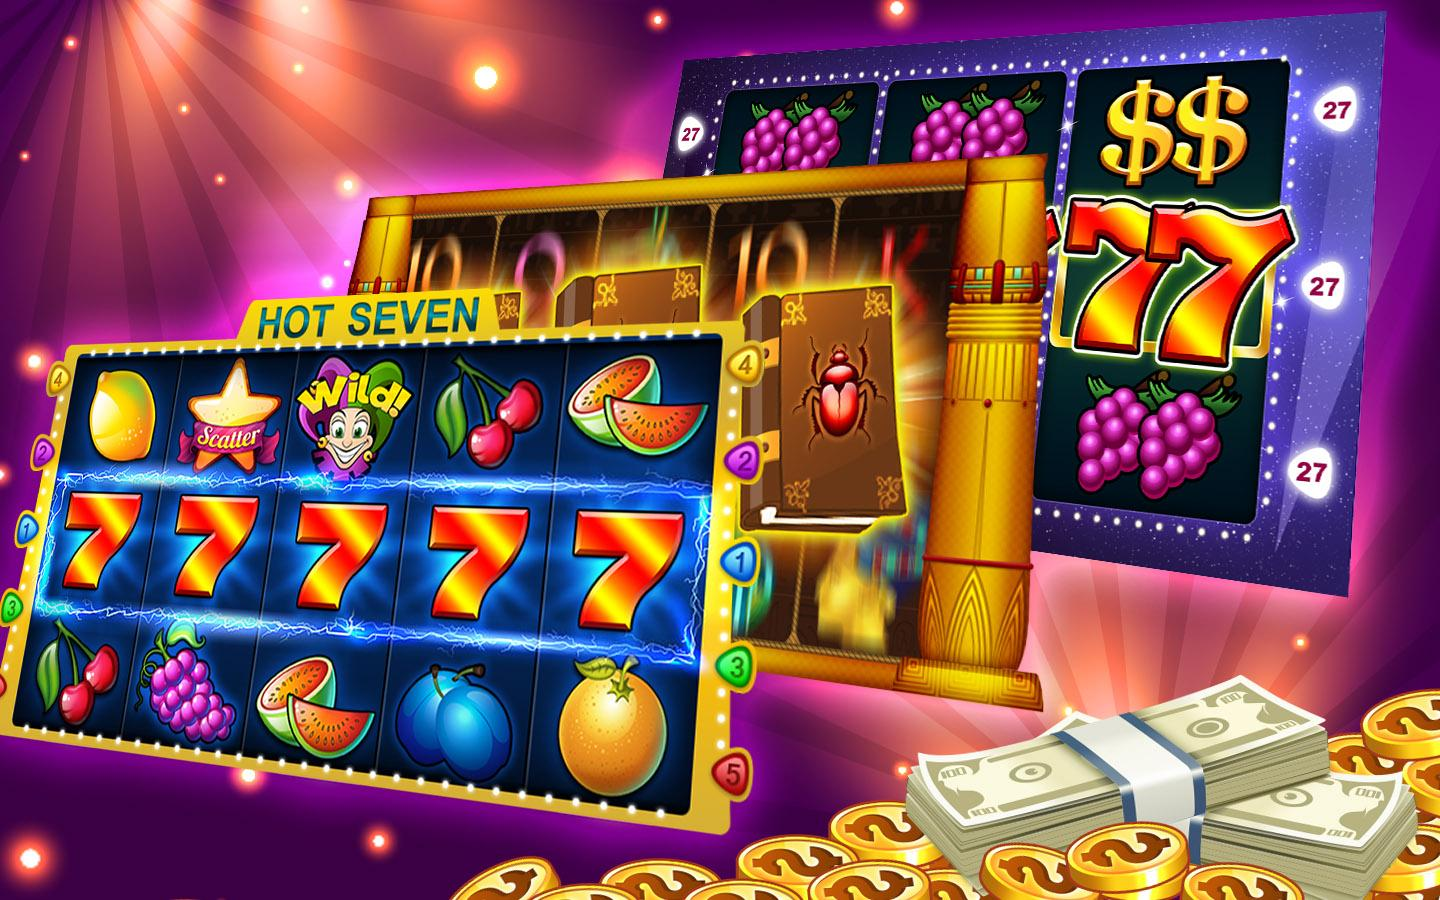 Best slot machine game on google play